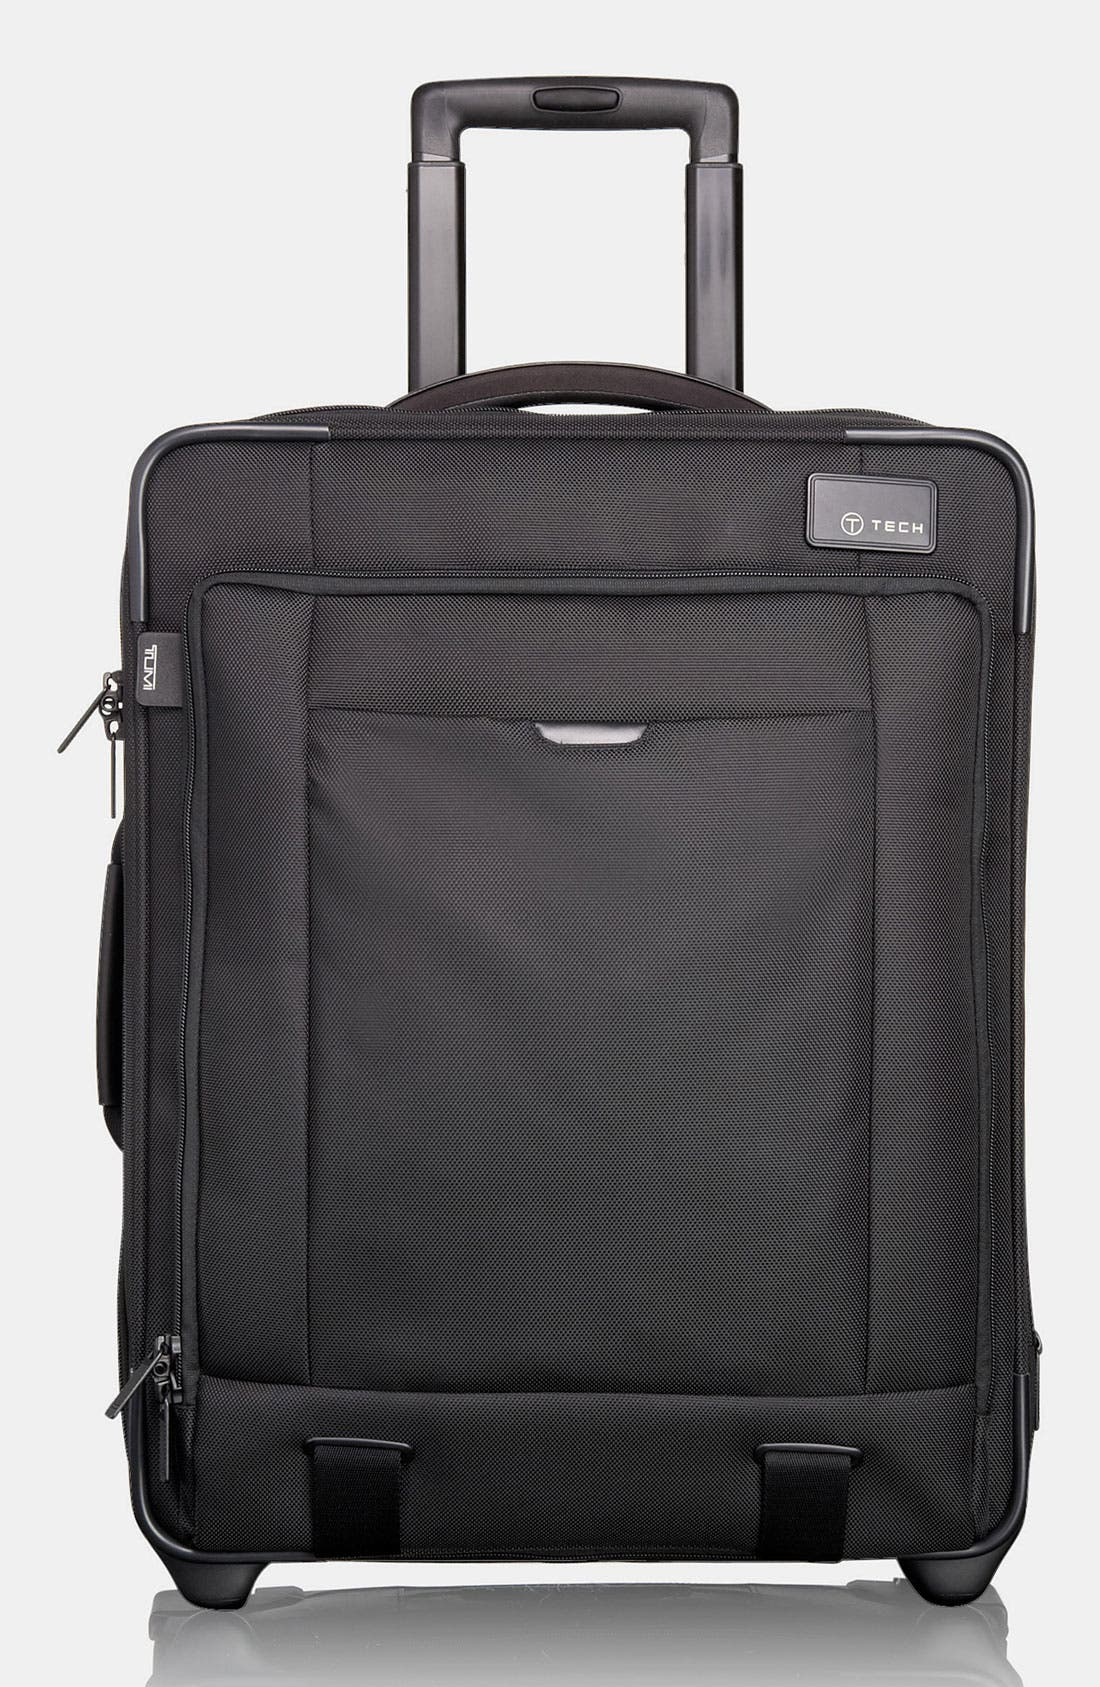 Alternate Image 1 Selected - Tumi 'T-Tech Network' Continental Carry-On